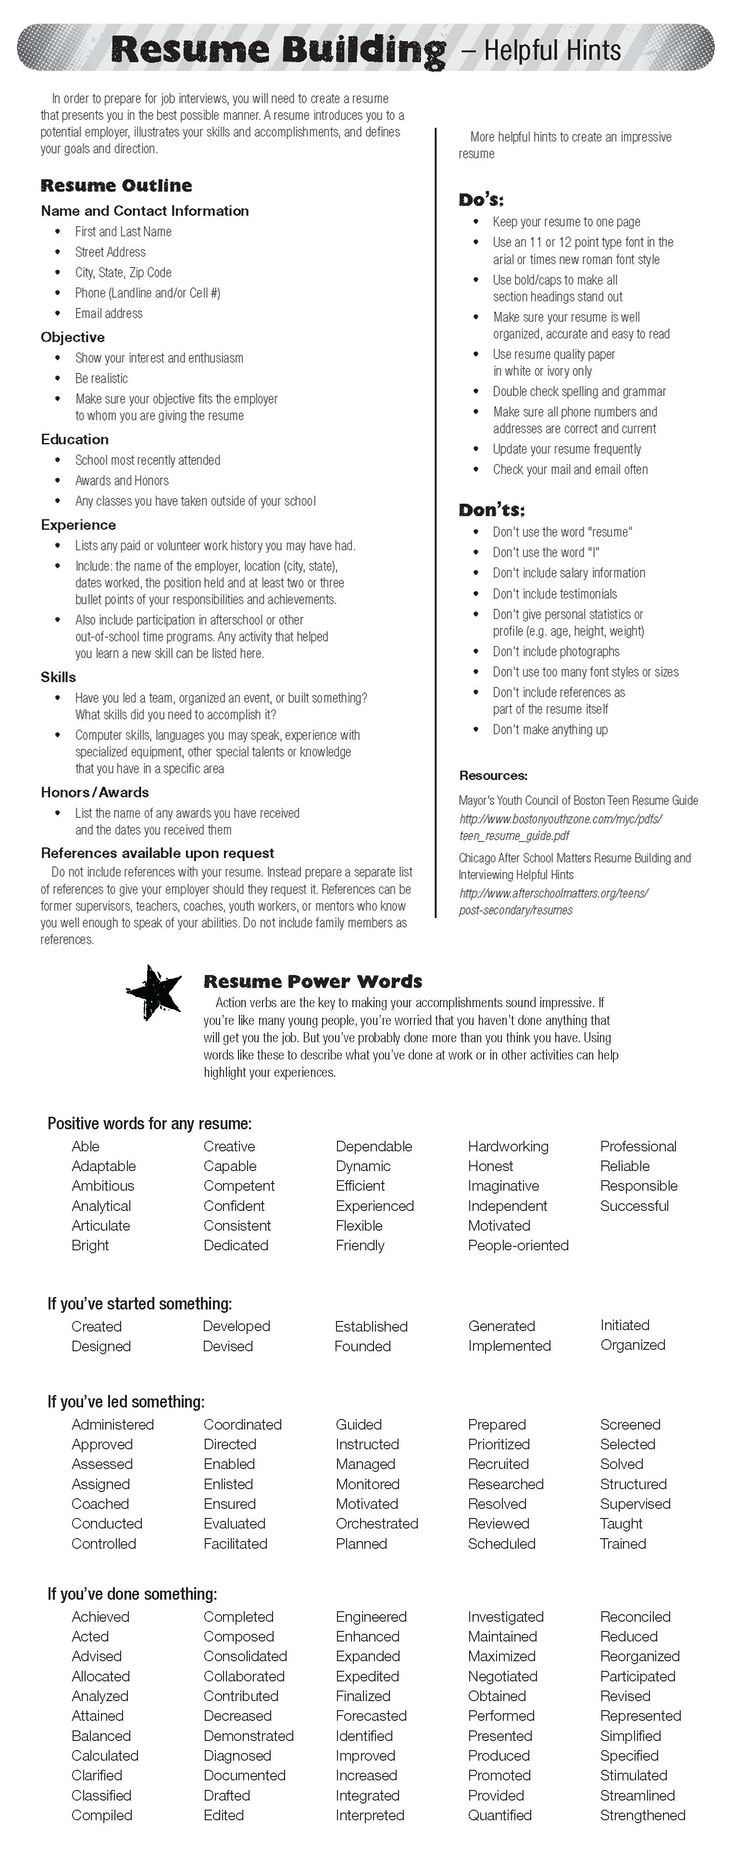 Opposenewapstandardsus  Prepossessing  Ideas About Resume On Pinterest  Cv Format Resume Cv And  With Licious  Ideas About Resume On Pinterest  Cv Format Resume Cv And Resume Templates With Amusing American Career College Optimal Resume Also Property Manager Resumes In Addition Senior Accountant Resume Sample And High School Resume Maker As Well As References Resume Sample Additionally Sample Resume Executive Assistant From Pinterestcom With Opposenewapstandardsus  Licious  Ideas About Resume On Pinterest  Cv Format Resume Cv And  With Amusing  Ideas About Resume On Pinterest  Cv Format Resume Cv And Resume Templates And Prepossessing American Career College Optimal Resume Also Property Manager Resumes In Addition Senior Accountant Resume Sample From Pinterestcom